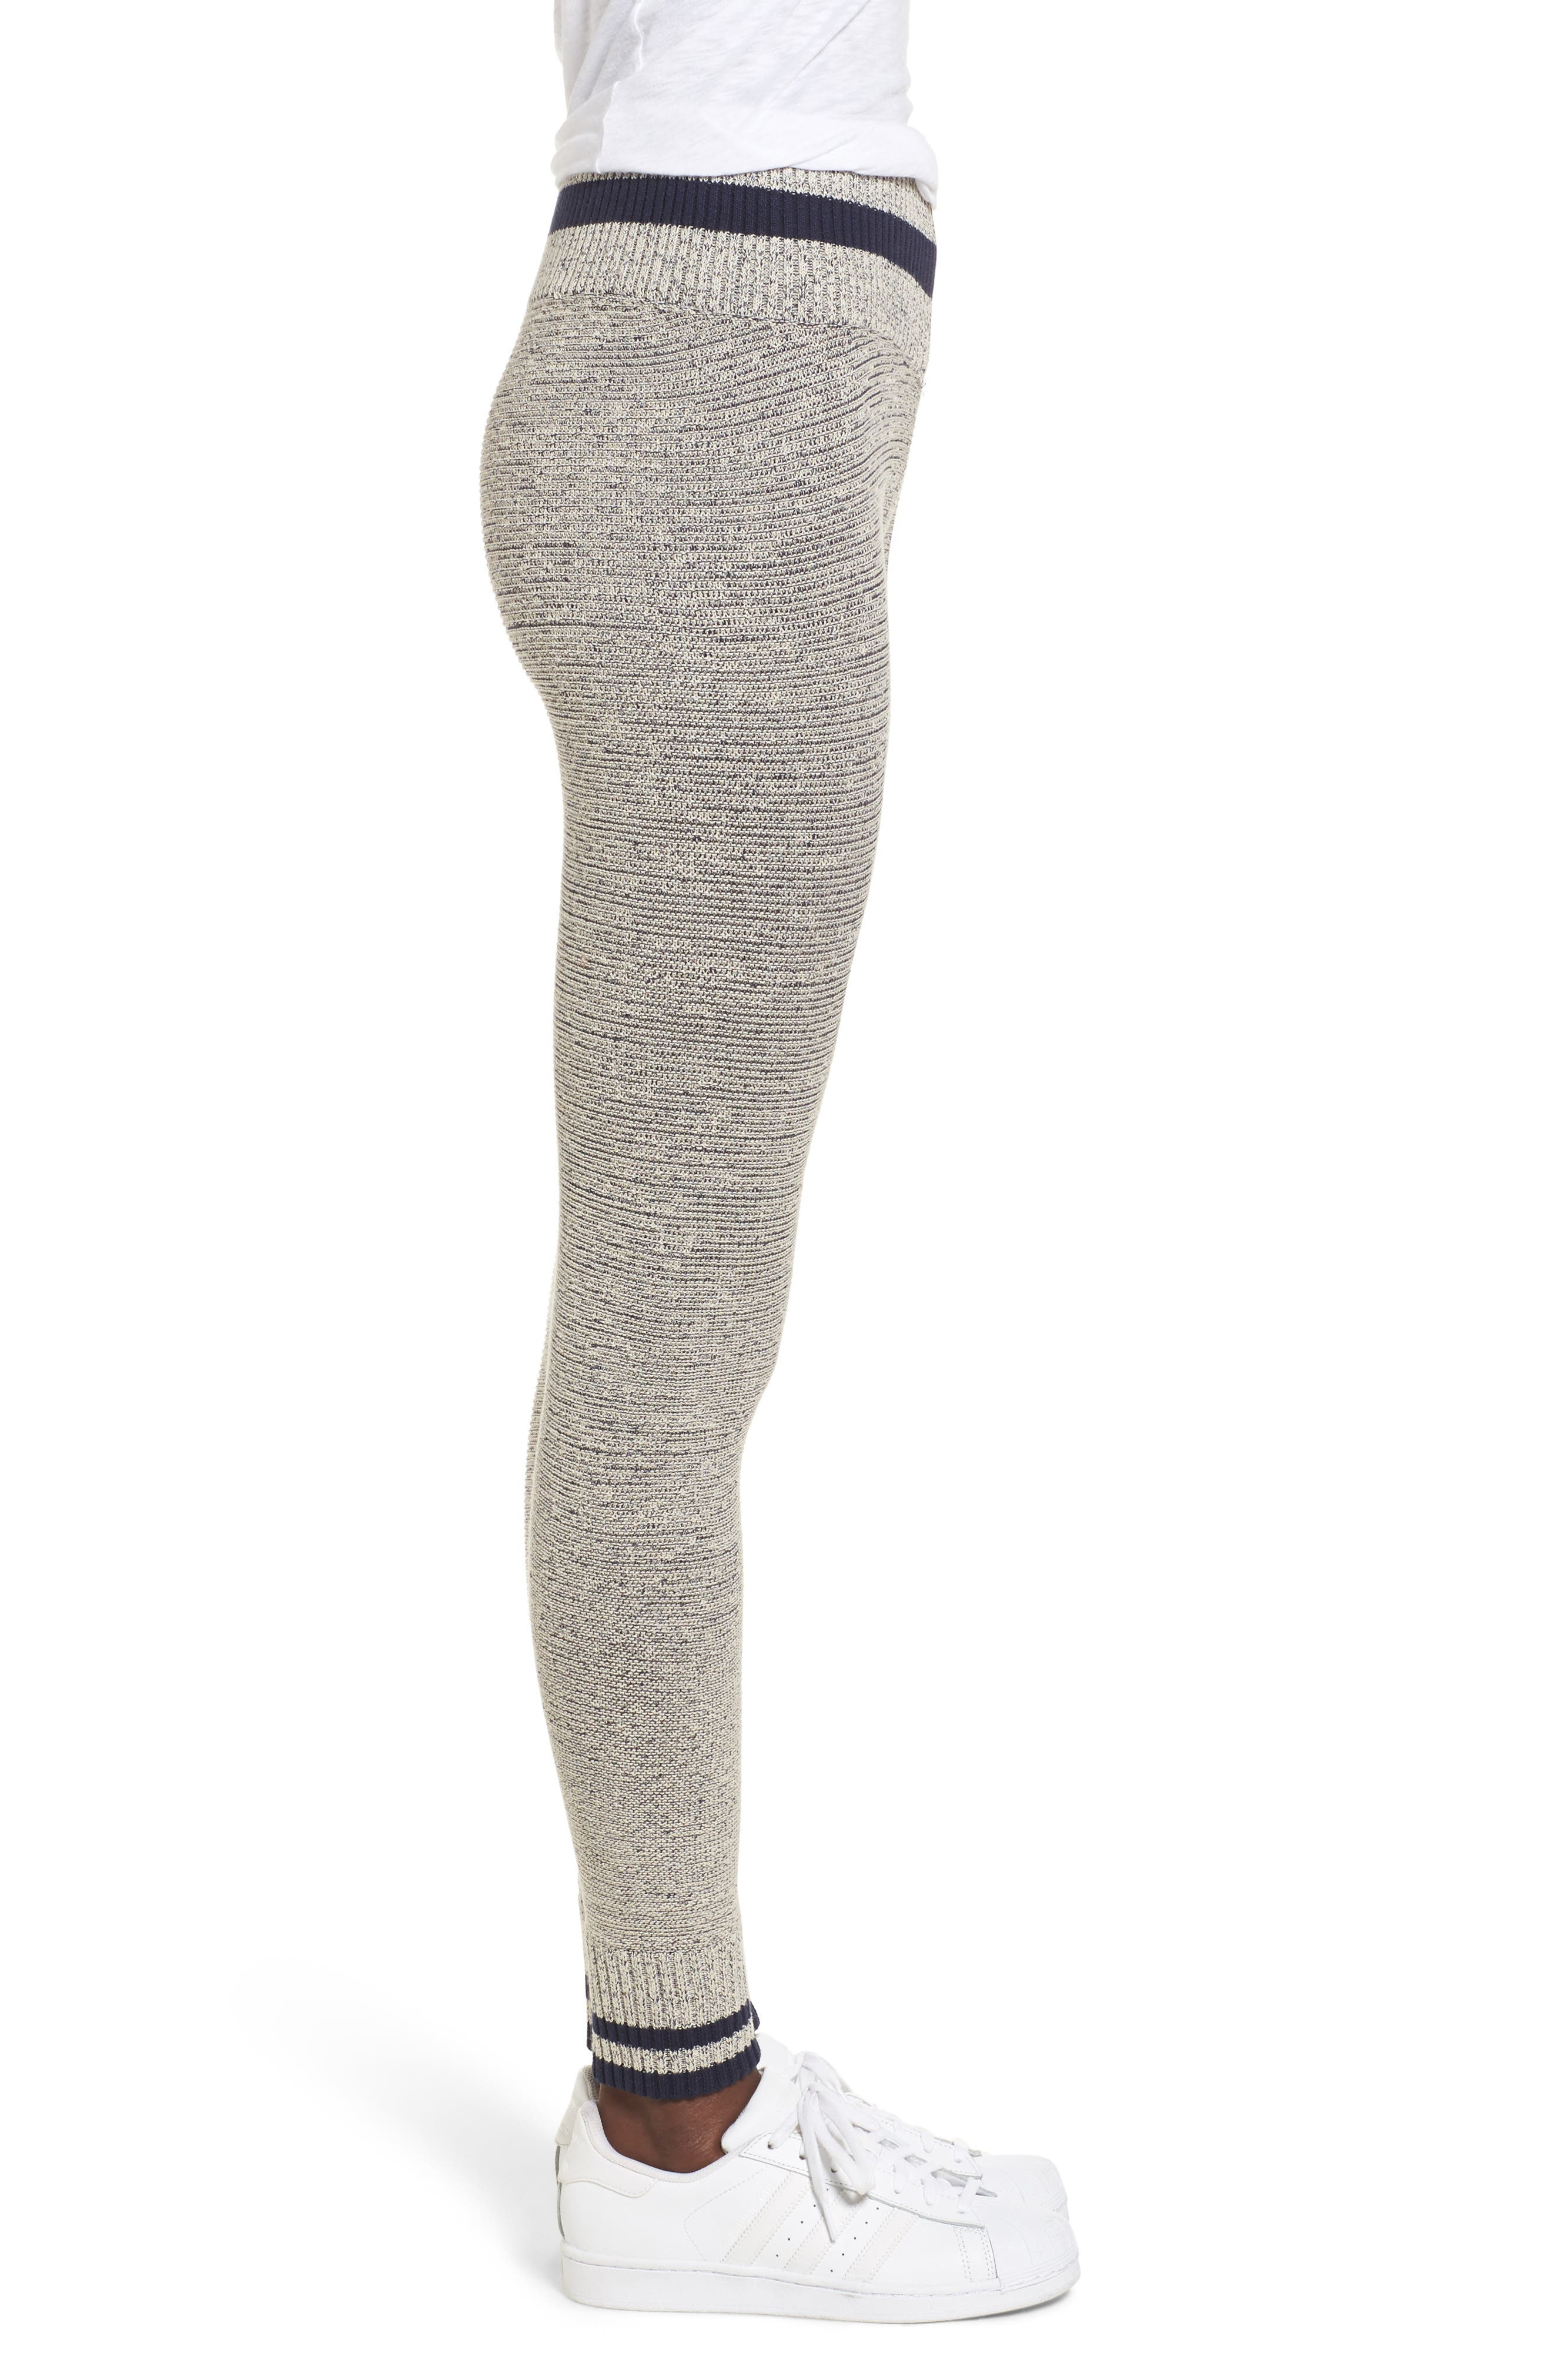 Loomed Knit Leggings,                             Alternate thumbnail 3, color,                             054